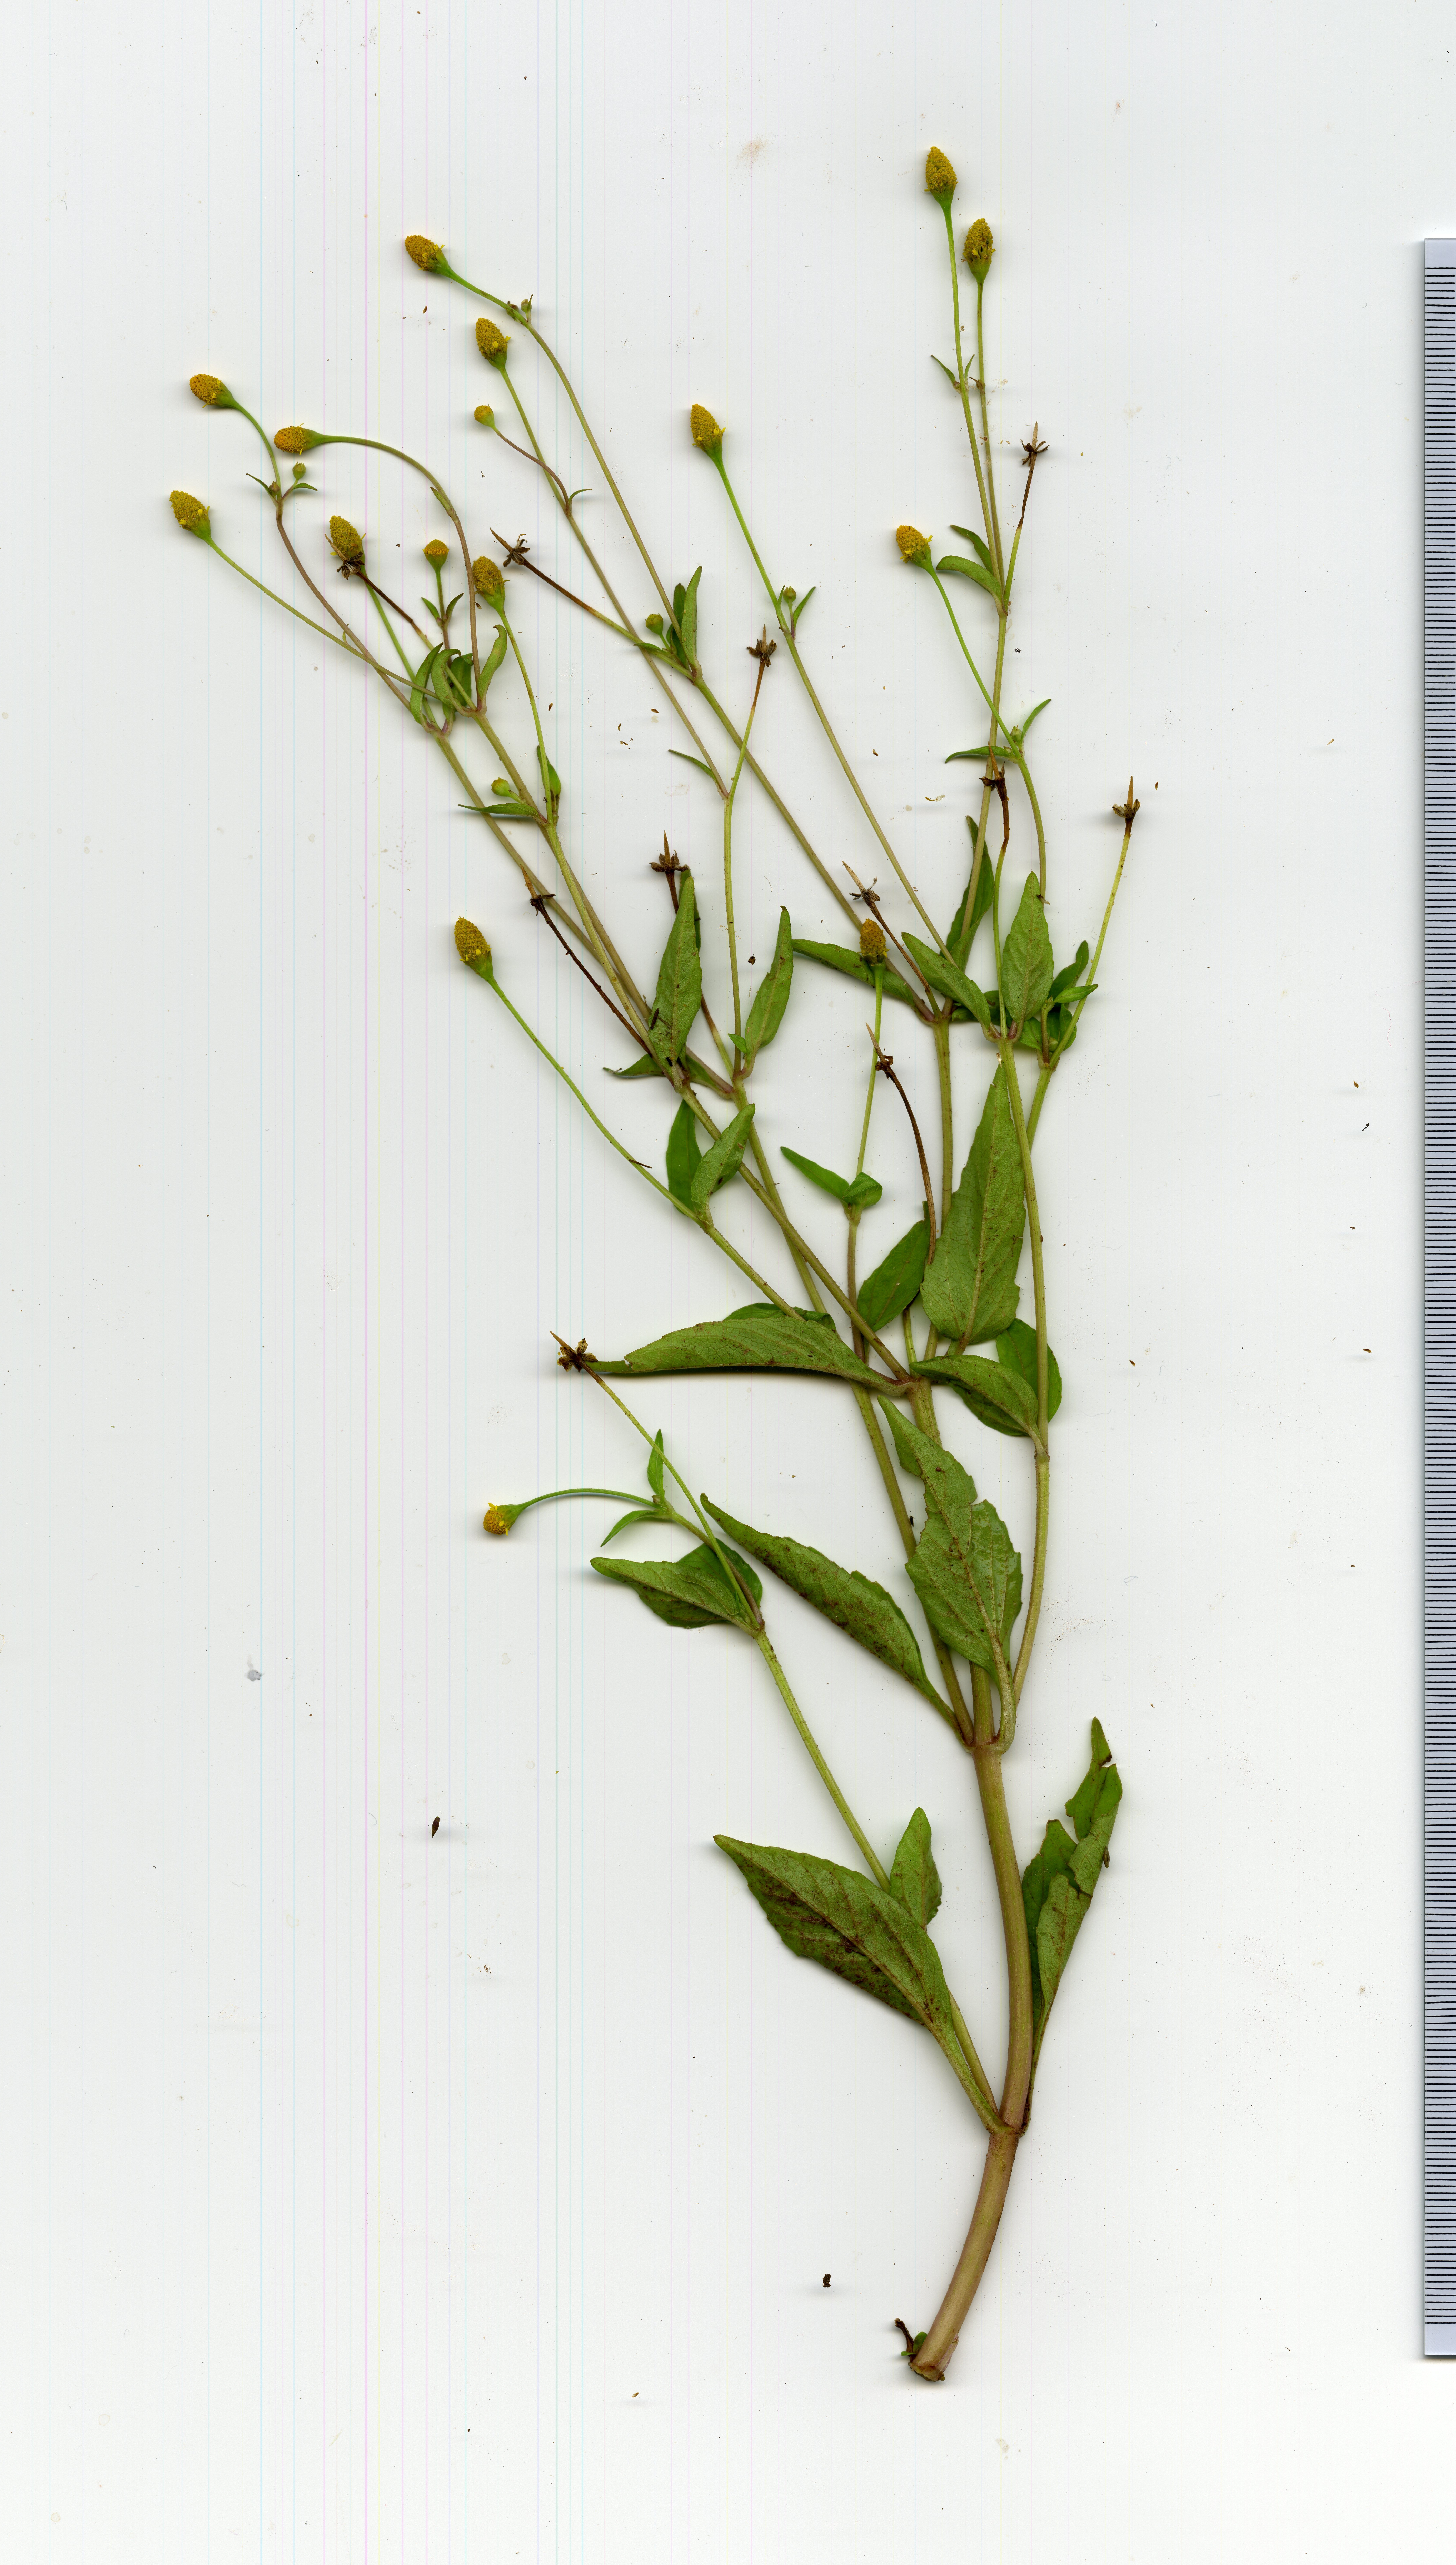 Shoots with inflorescences